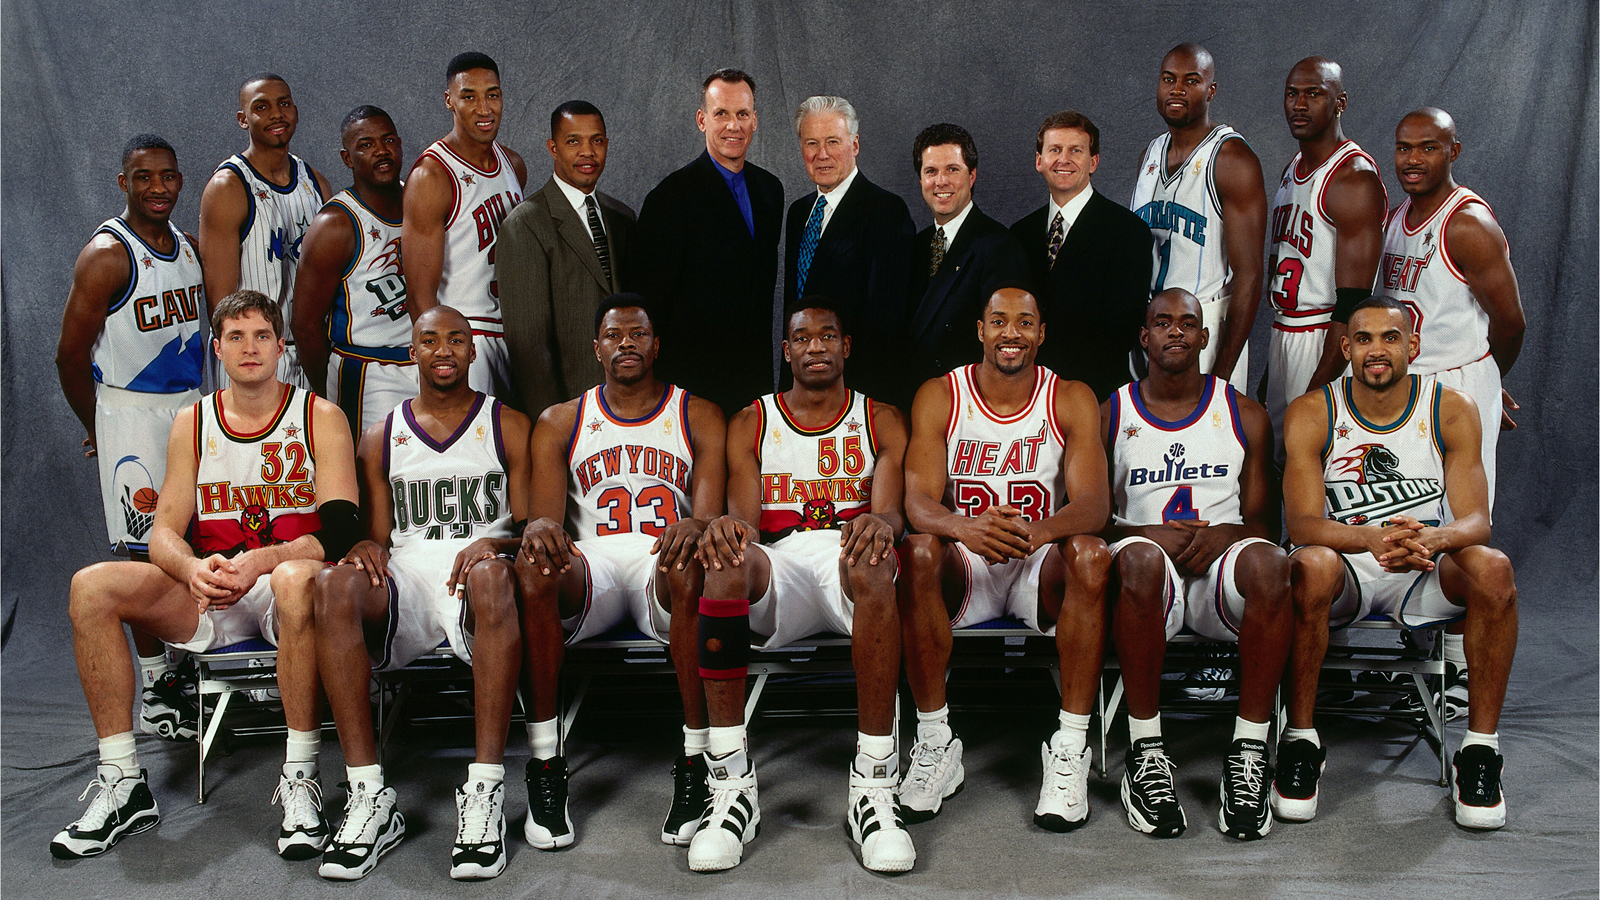 The Eastern Conference All-Stars pose for a portrait prior to the 1997 NBA All-Star Game in Cleveland, Ohio.